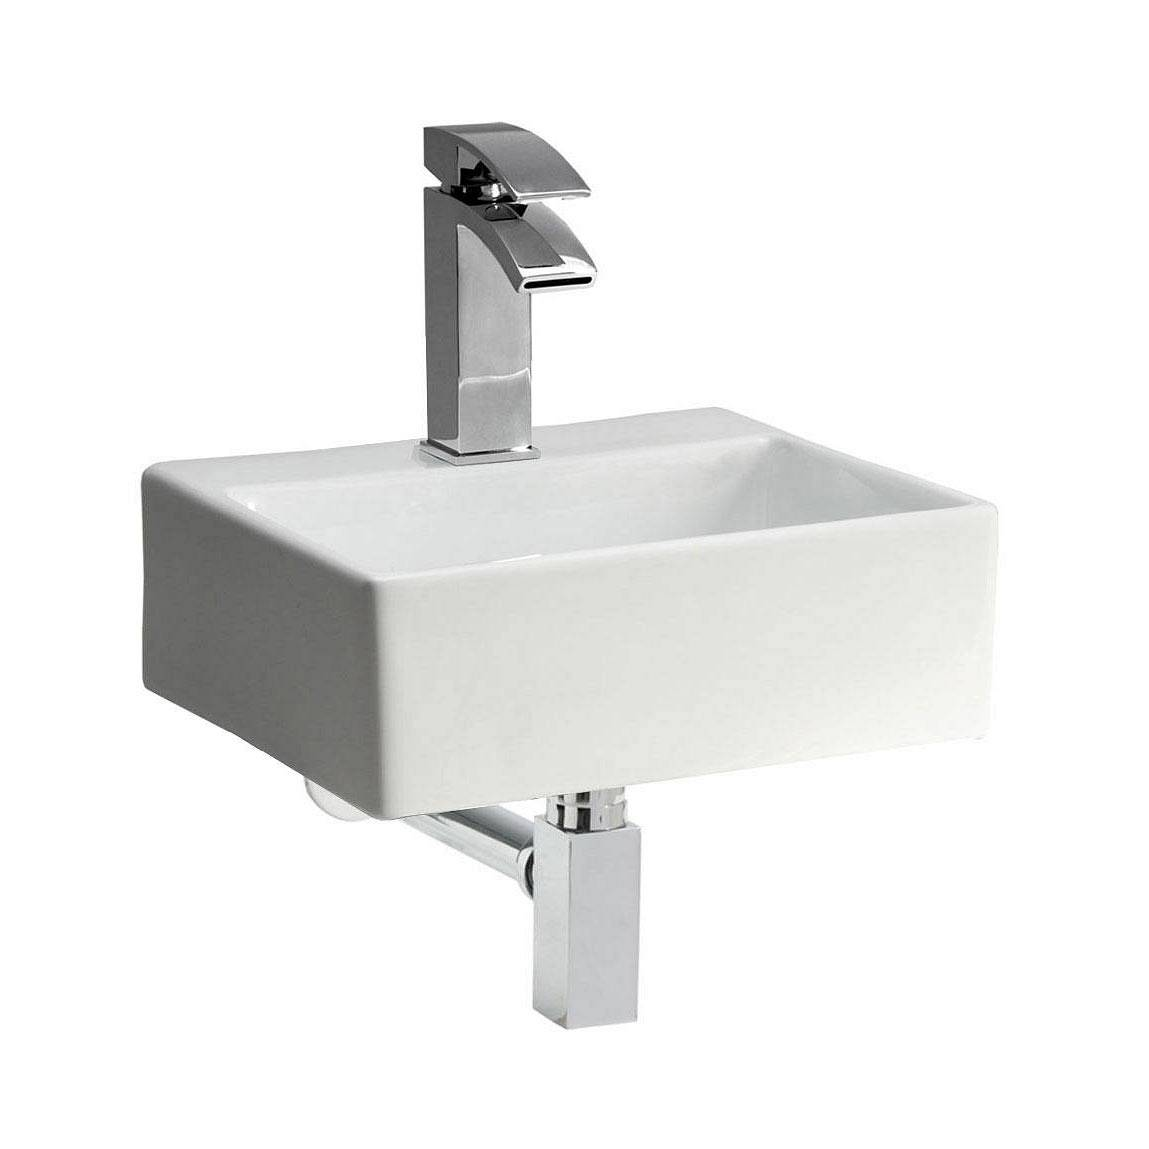 Image of Bologna Wall Mounted Basin